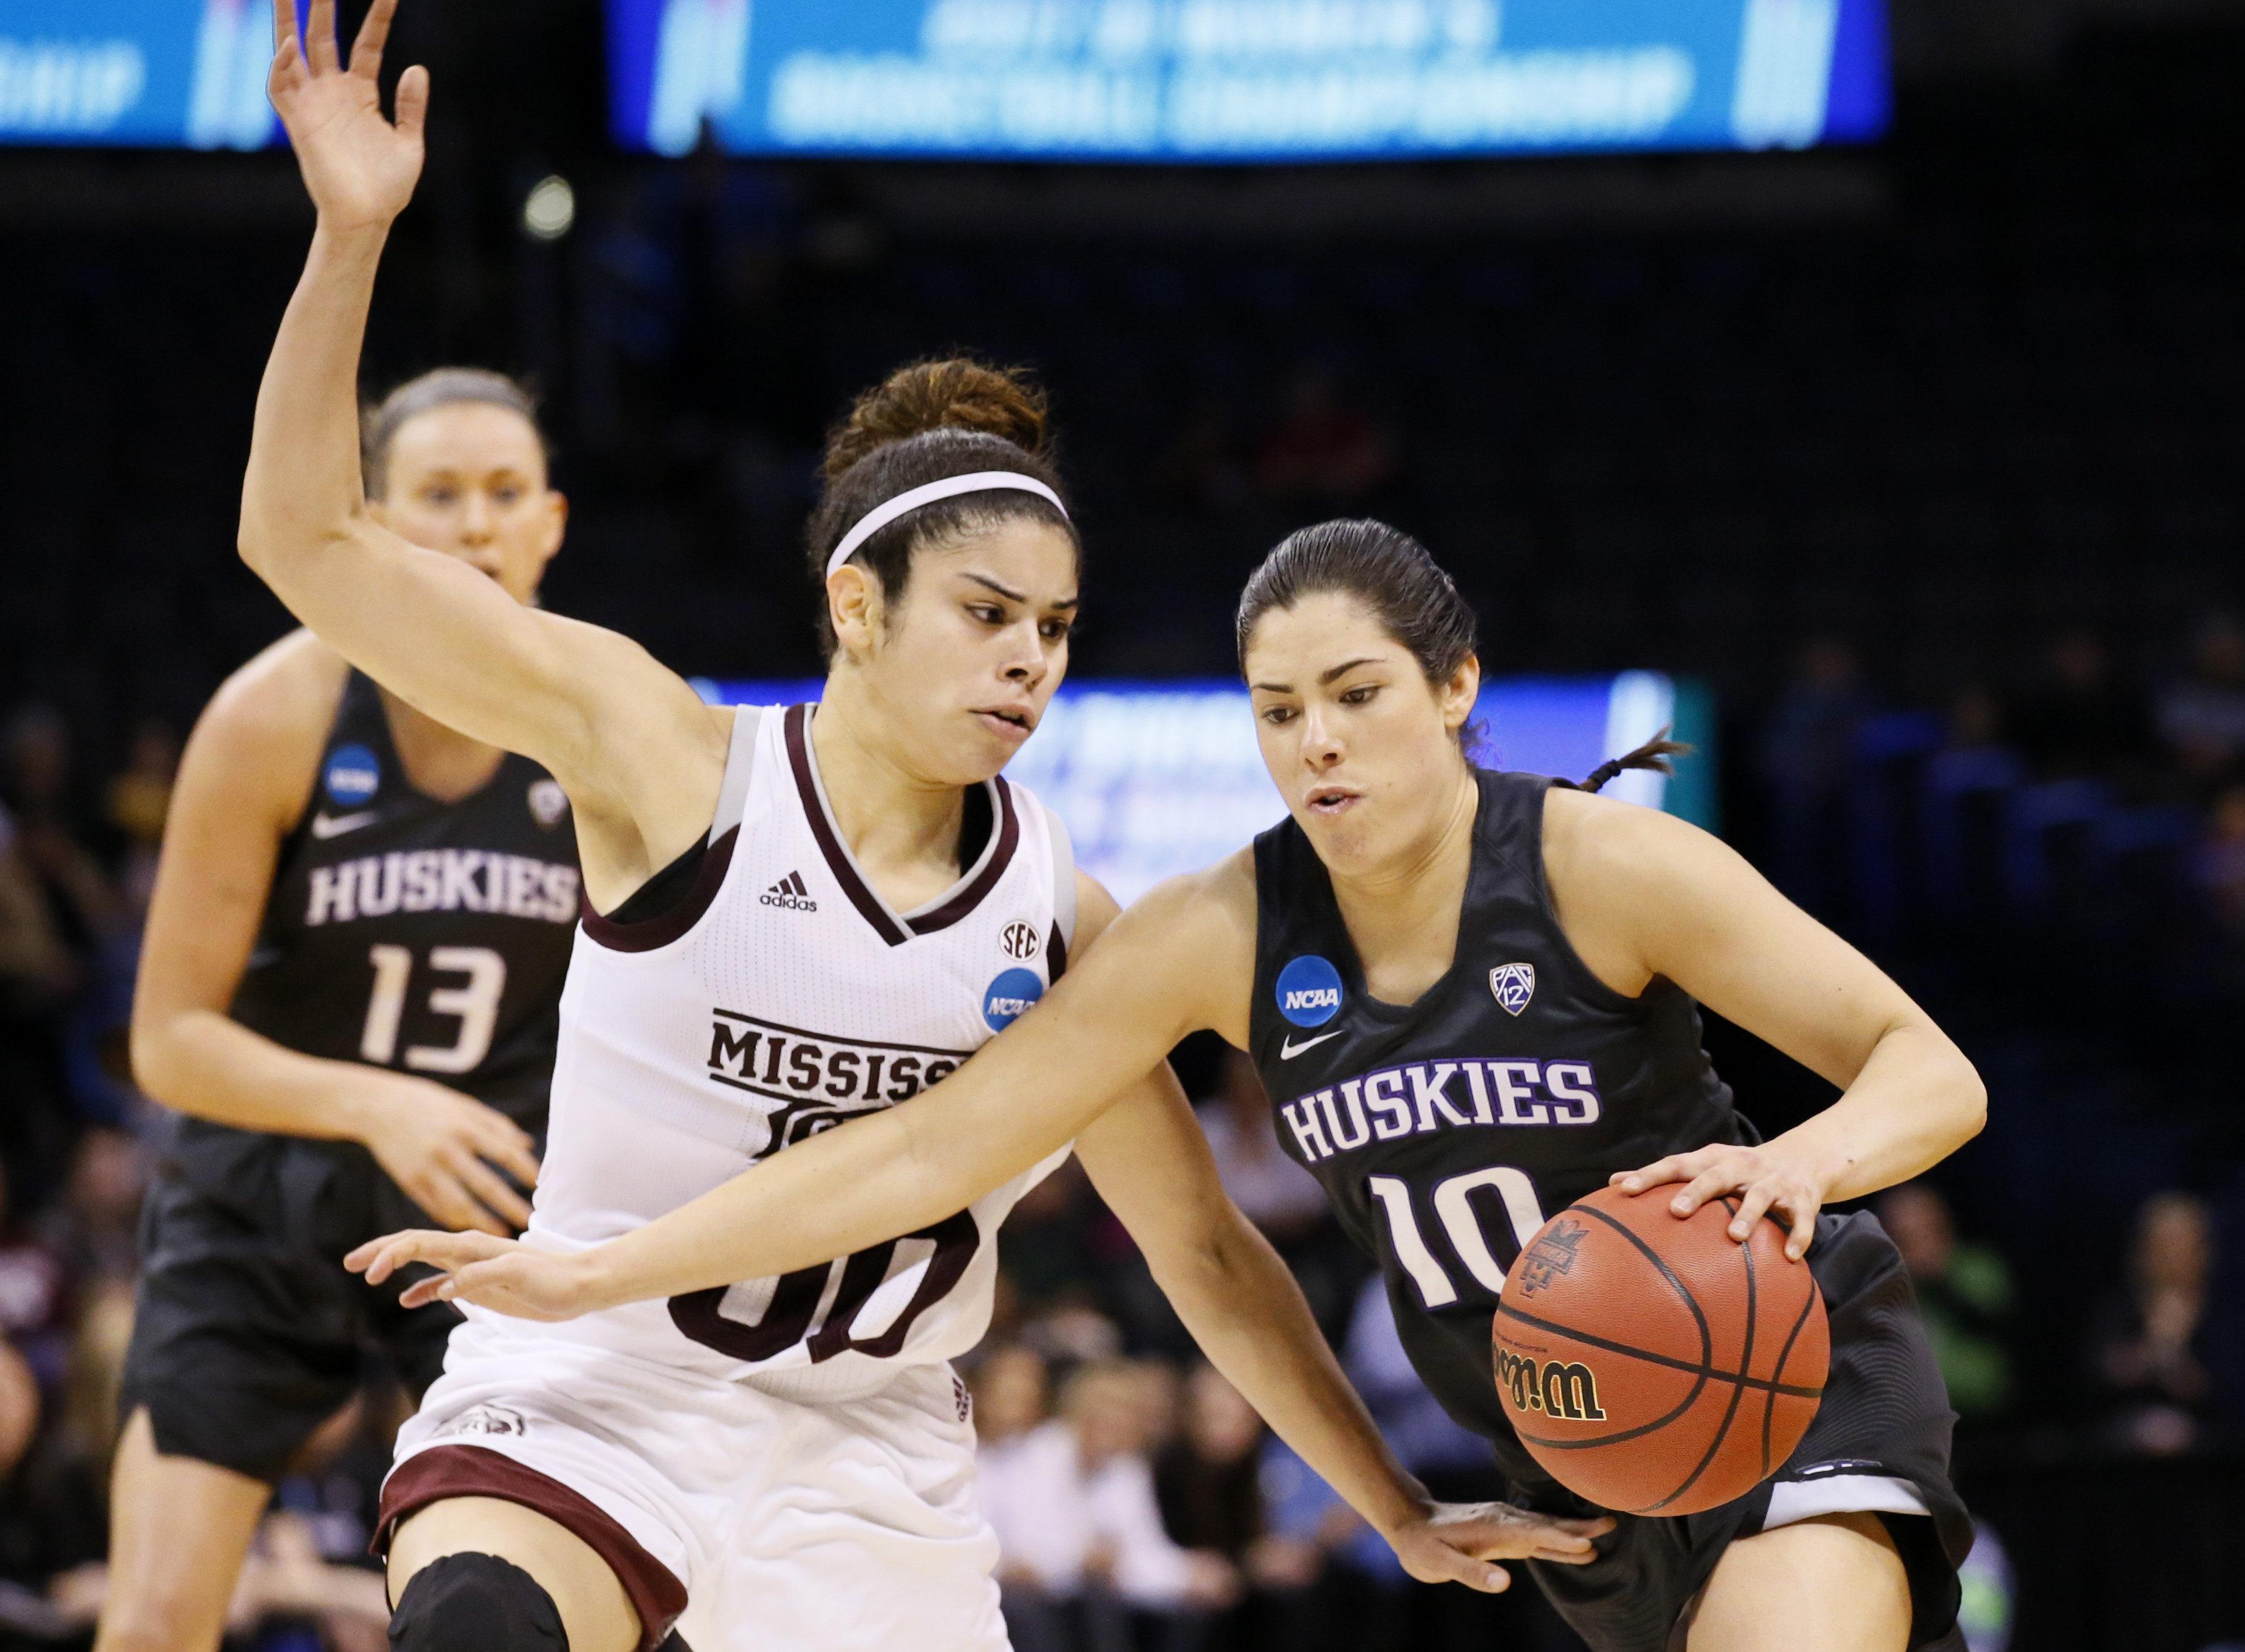 Washington guard Kelsey Plum drives past Mississippi State guard Dominique Dillingham, left, during the first half of a regional semifinal of the NCAA women's college basketball tournament, Friday, March 24, 2017, in Oklahoma City. (AP Photo/Sue Ogrocki)